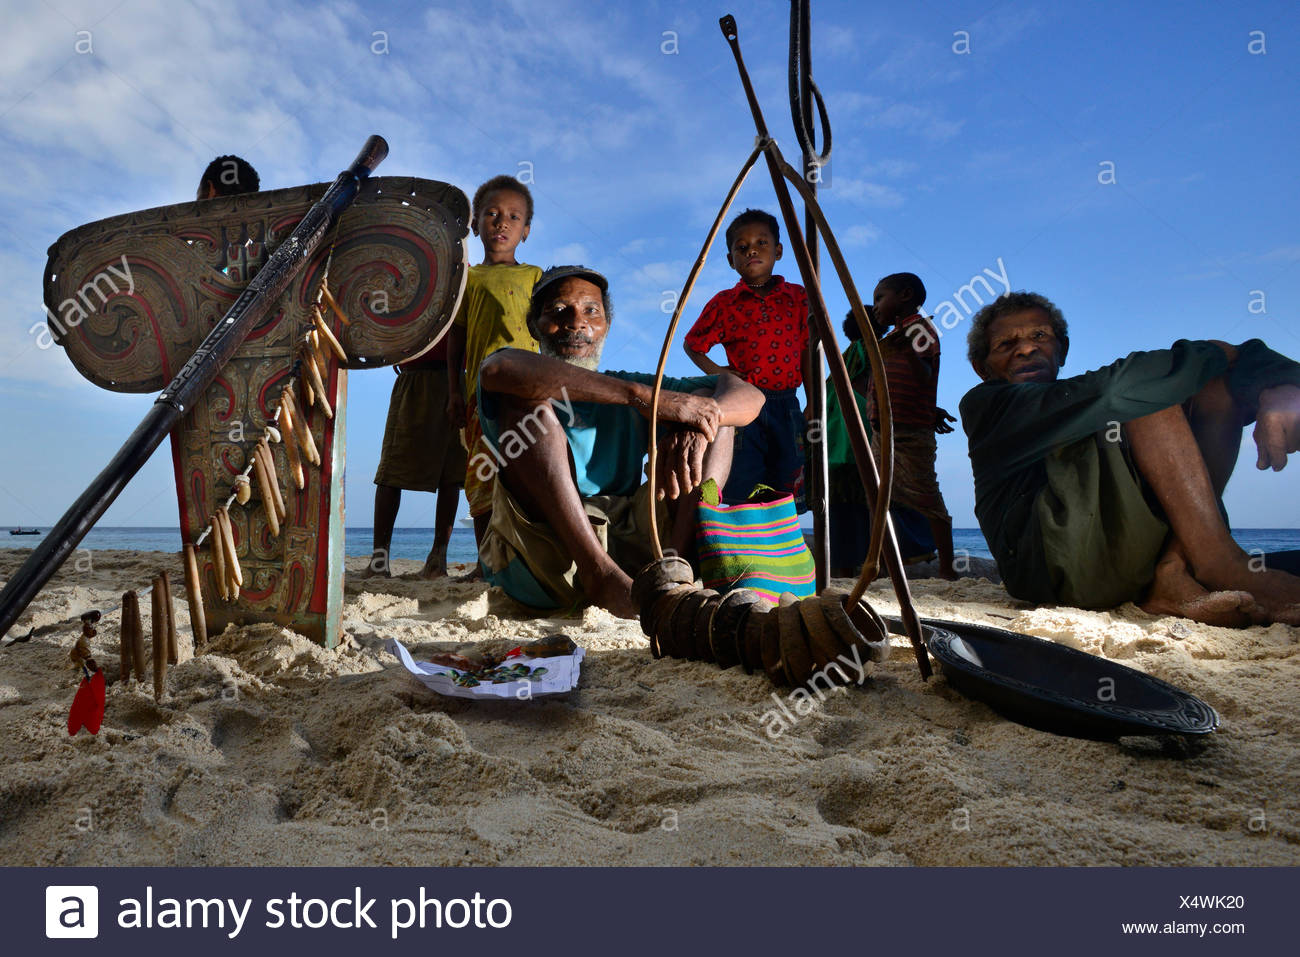 Locals sitting by a canoe sell goods to people who come ashore. - Stock Image